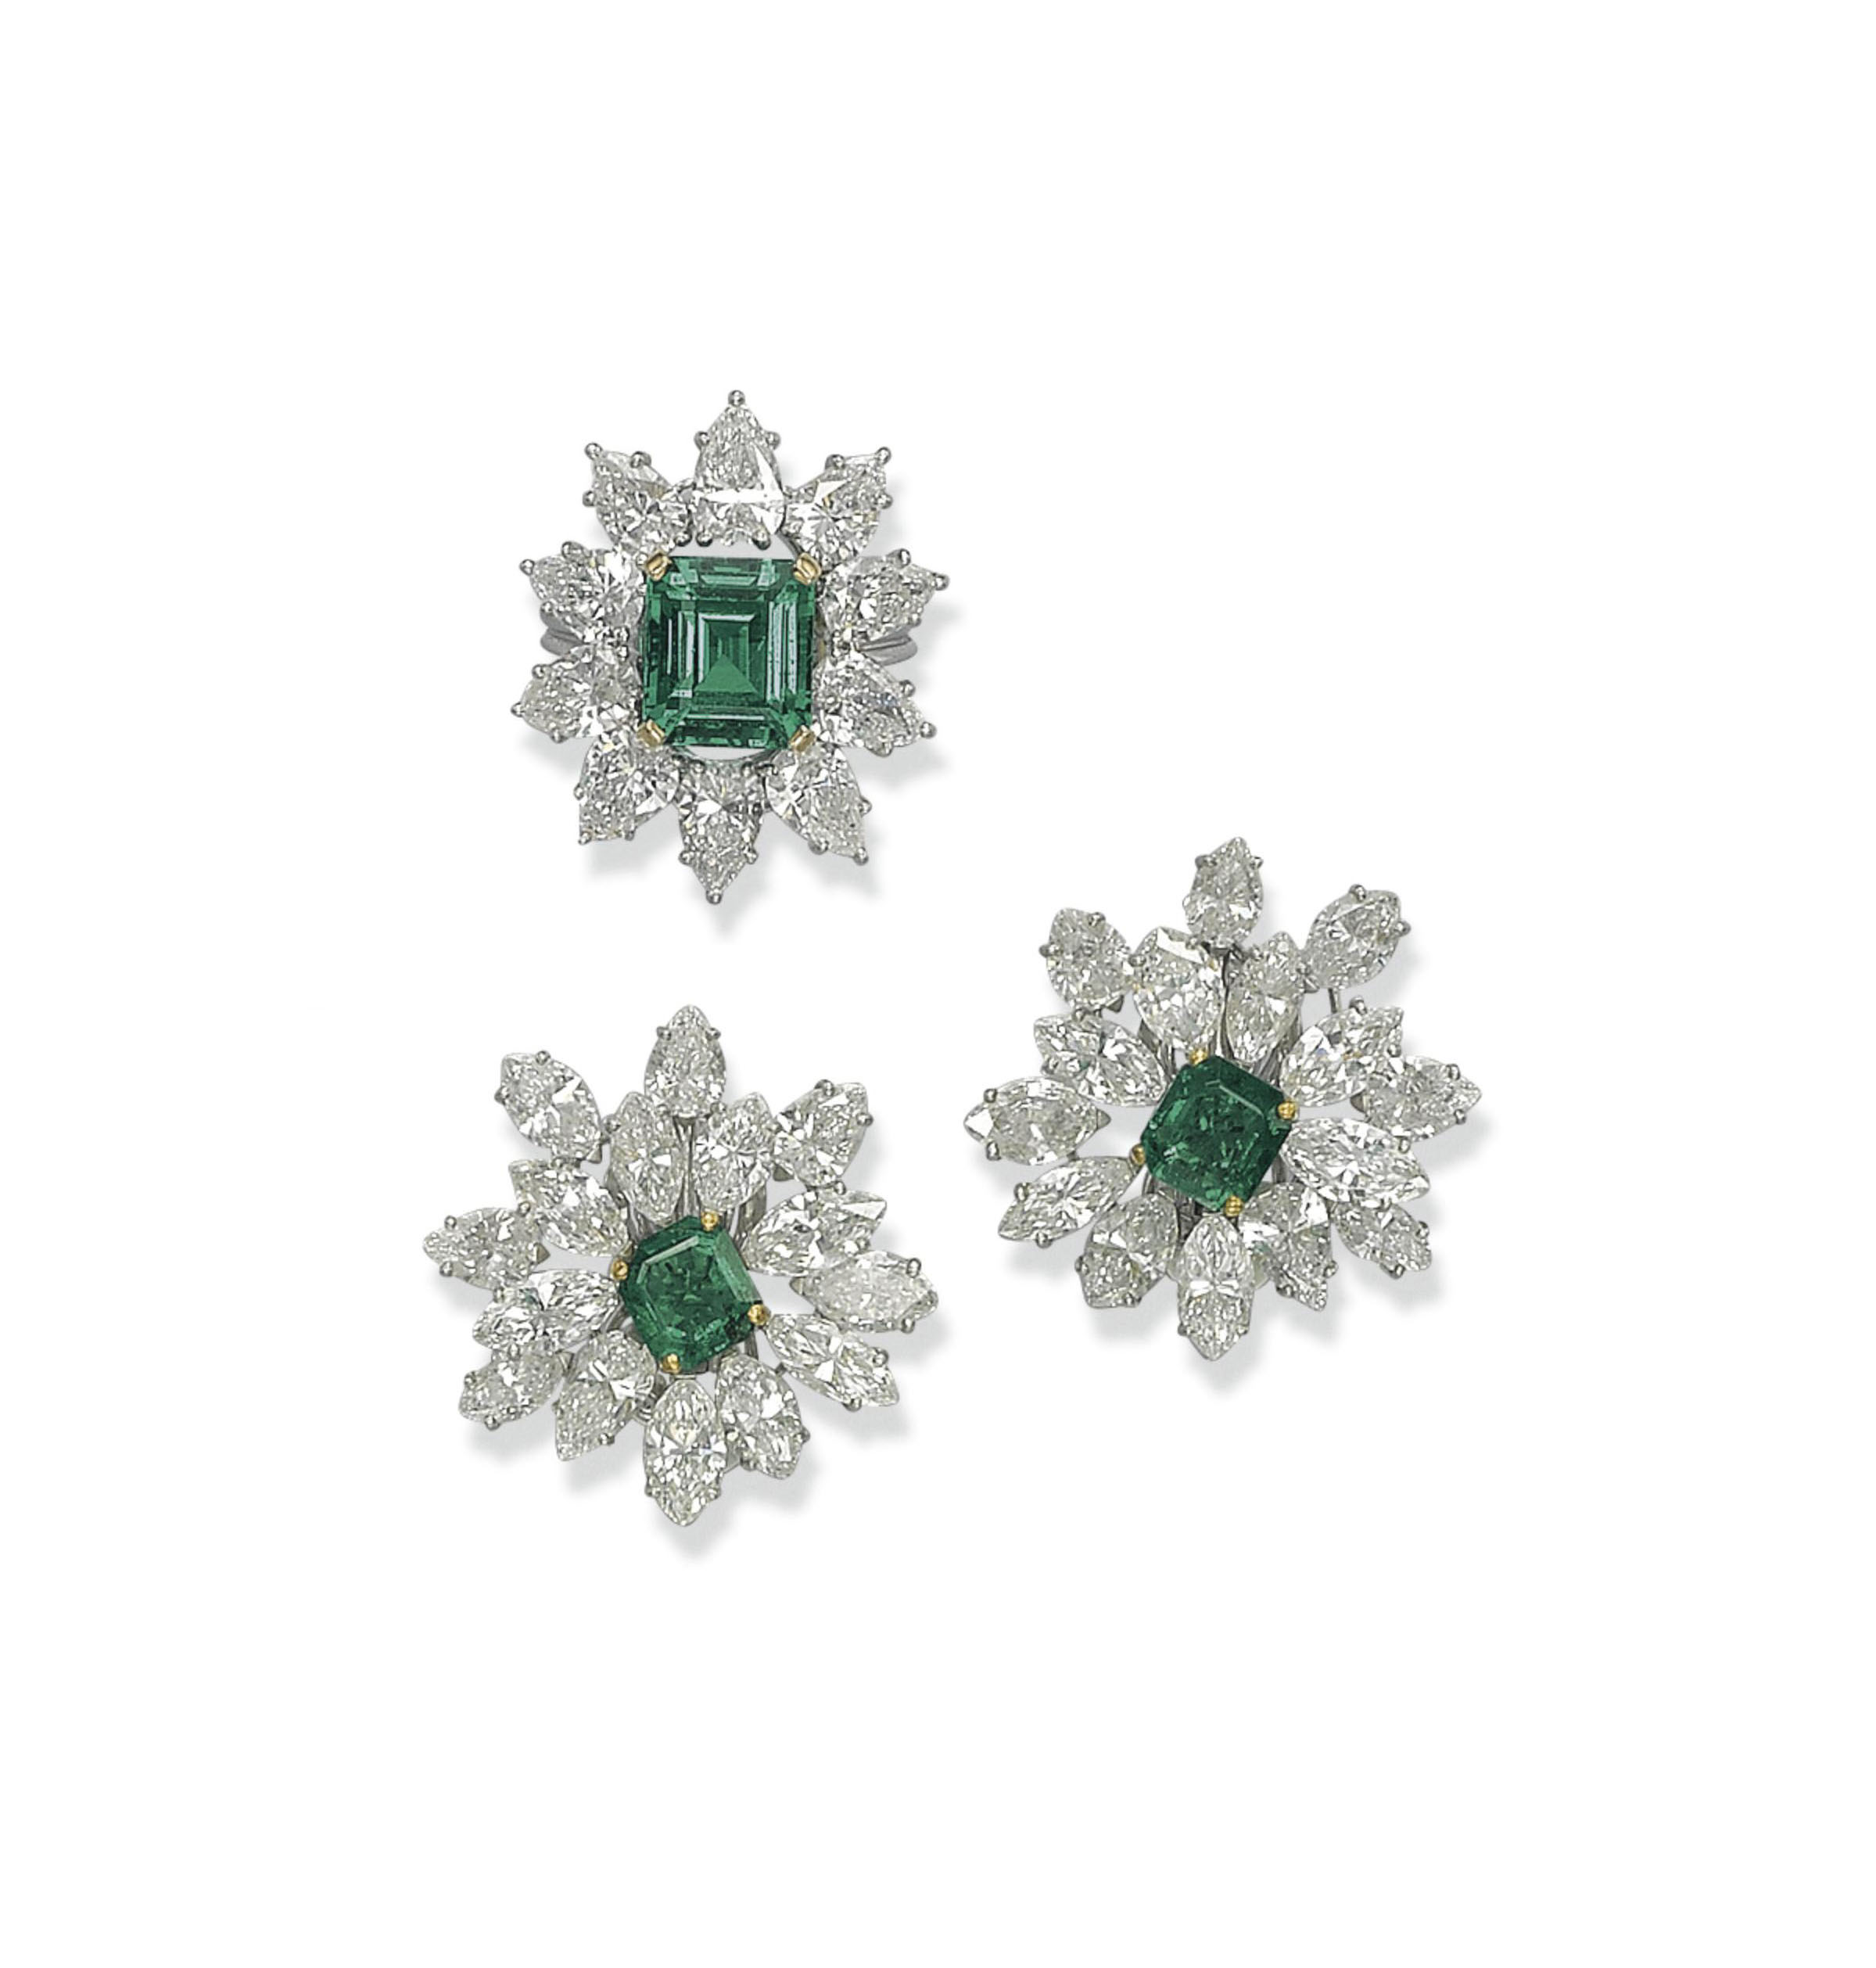 A SET OF EMERALD AND DIAMOND JEWELLERY, BY FARAONE